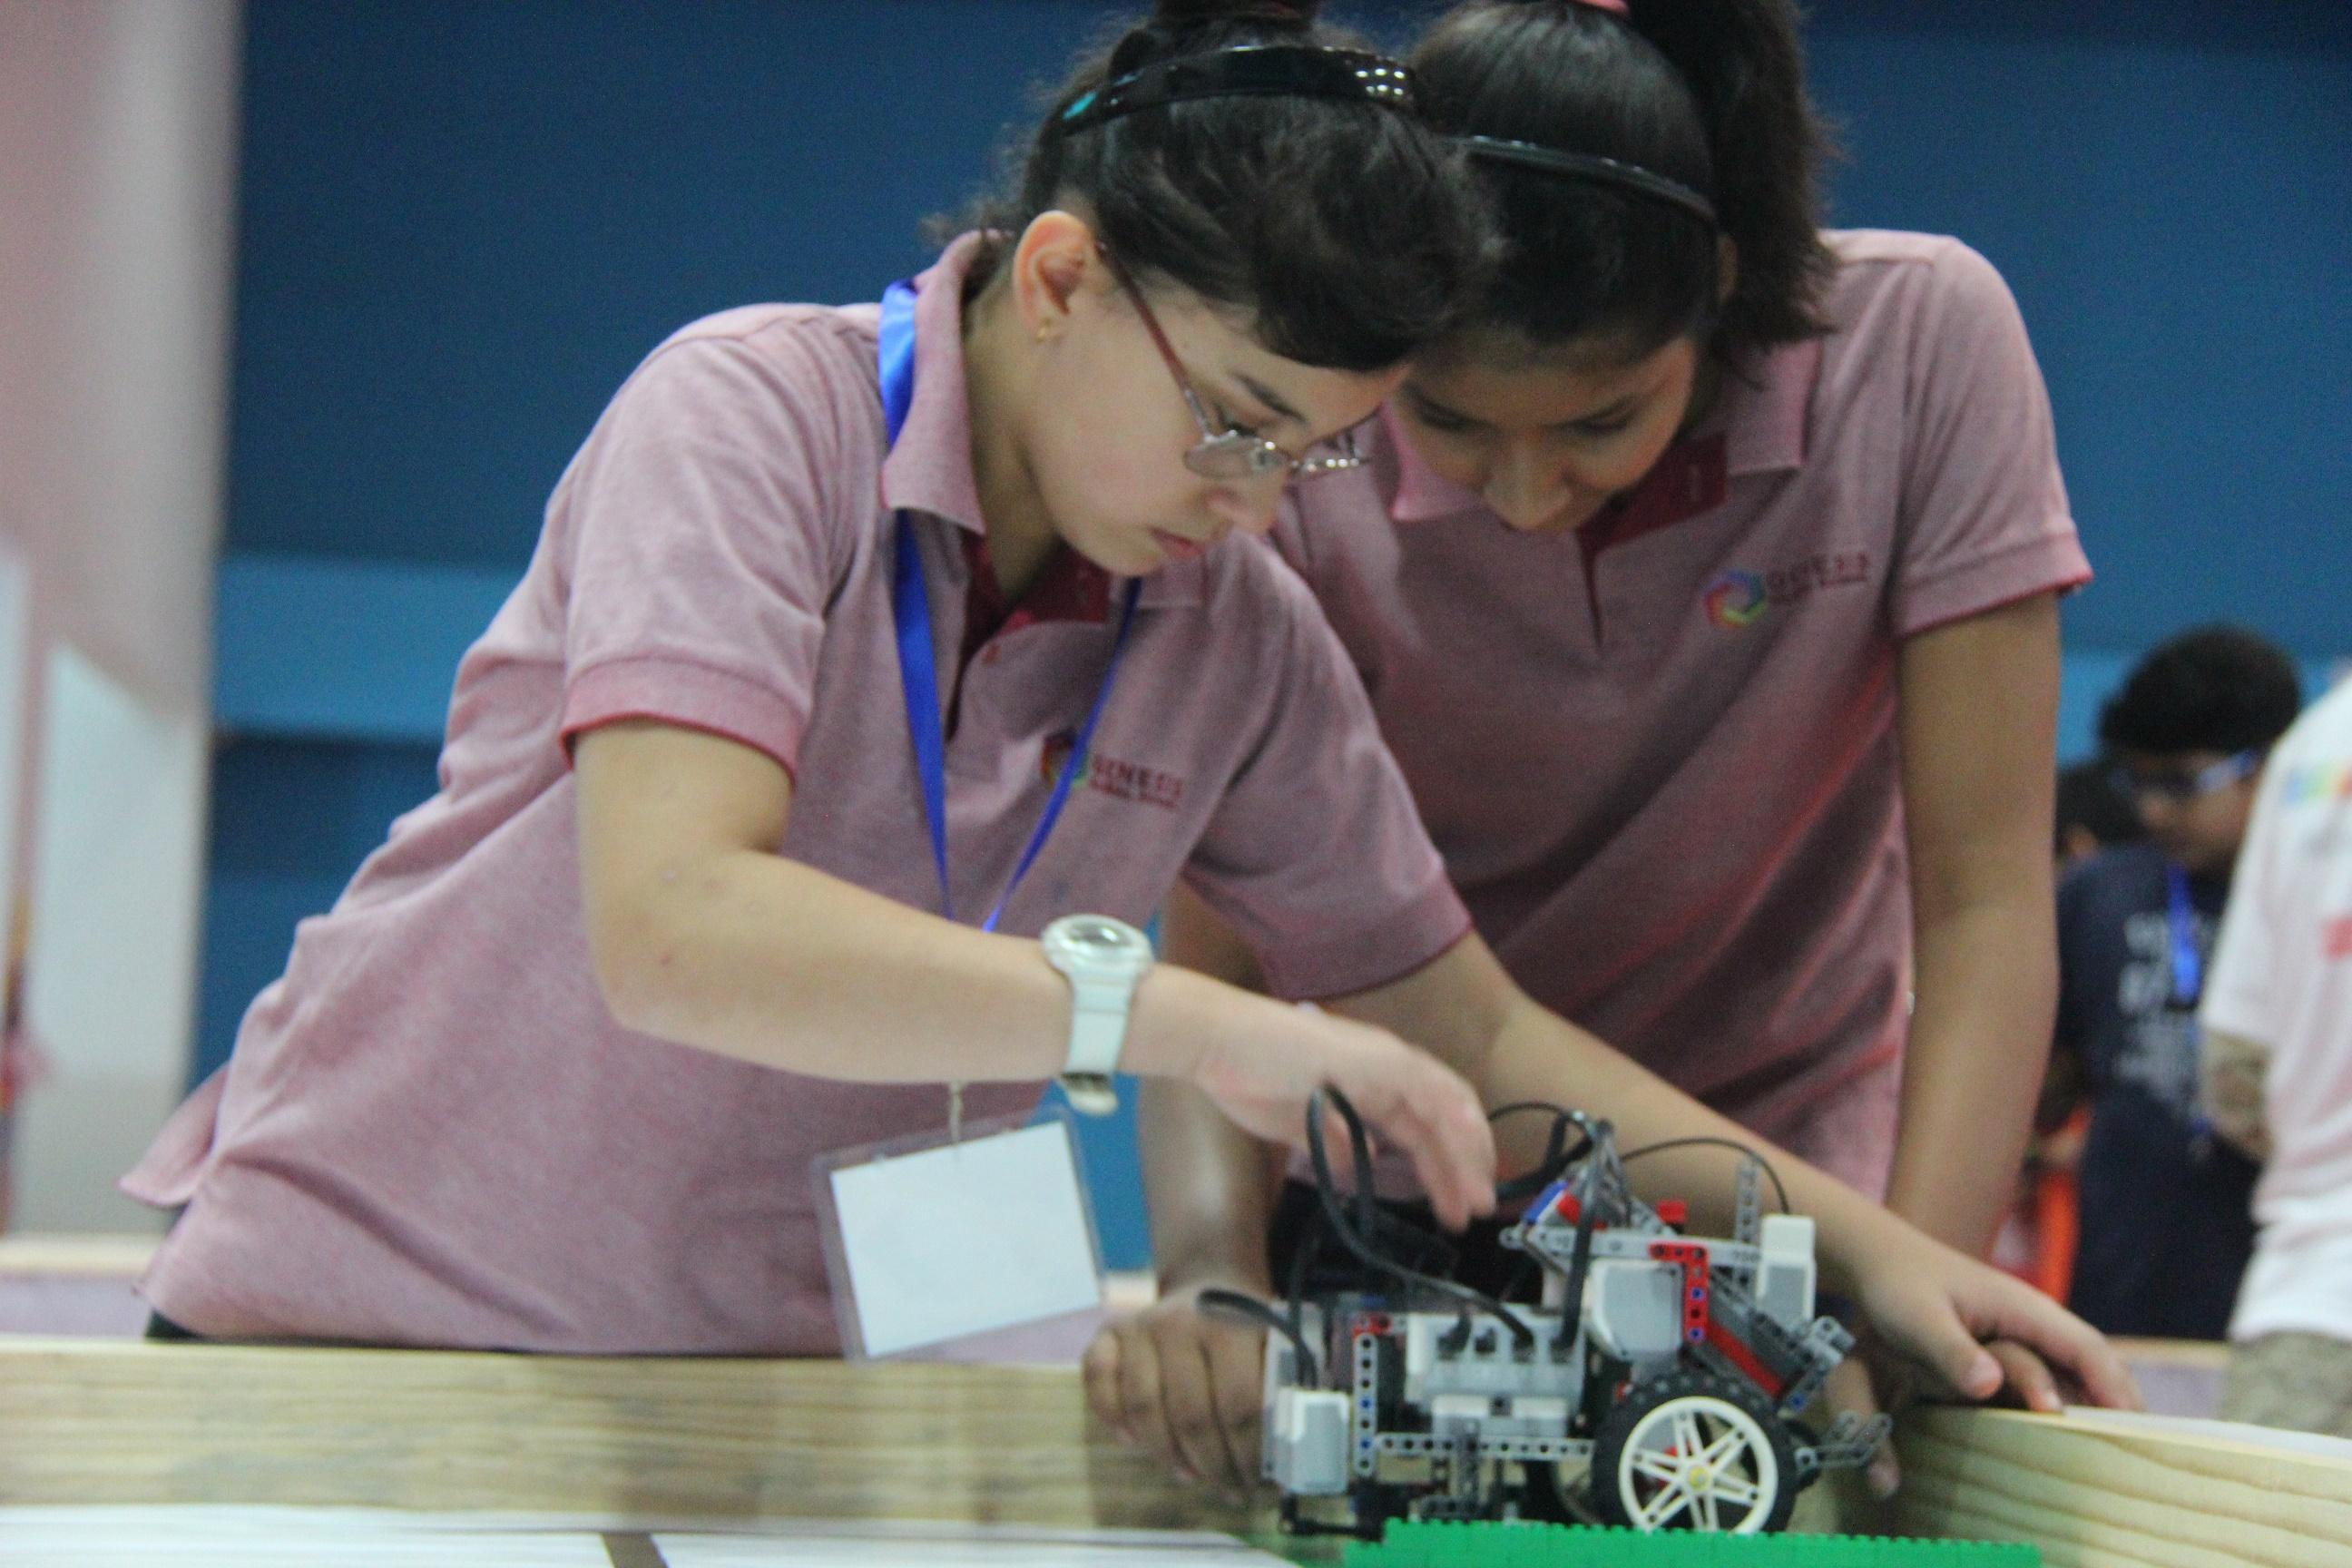 Students at The World Robot Olympiad 2016 at Genesis Global School